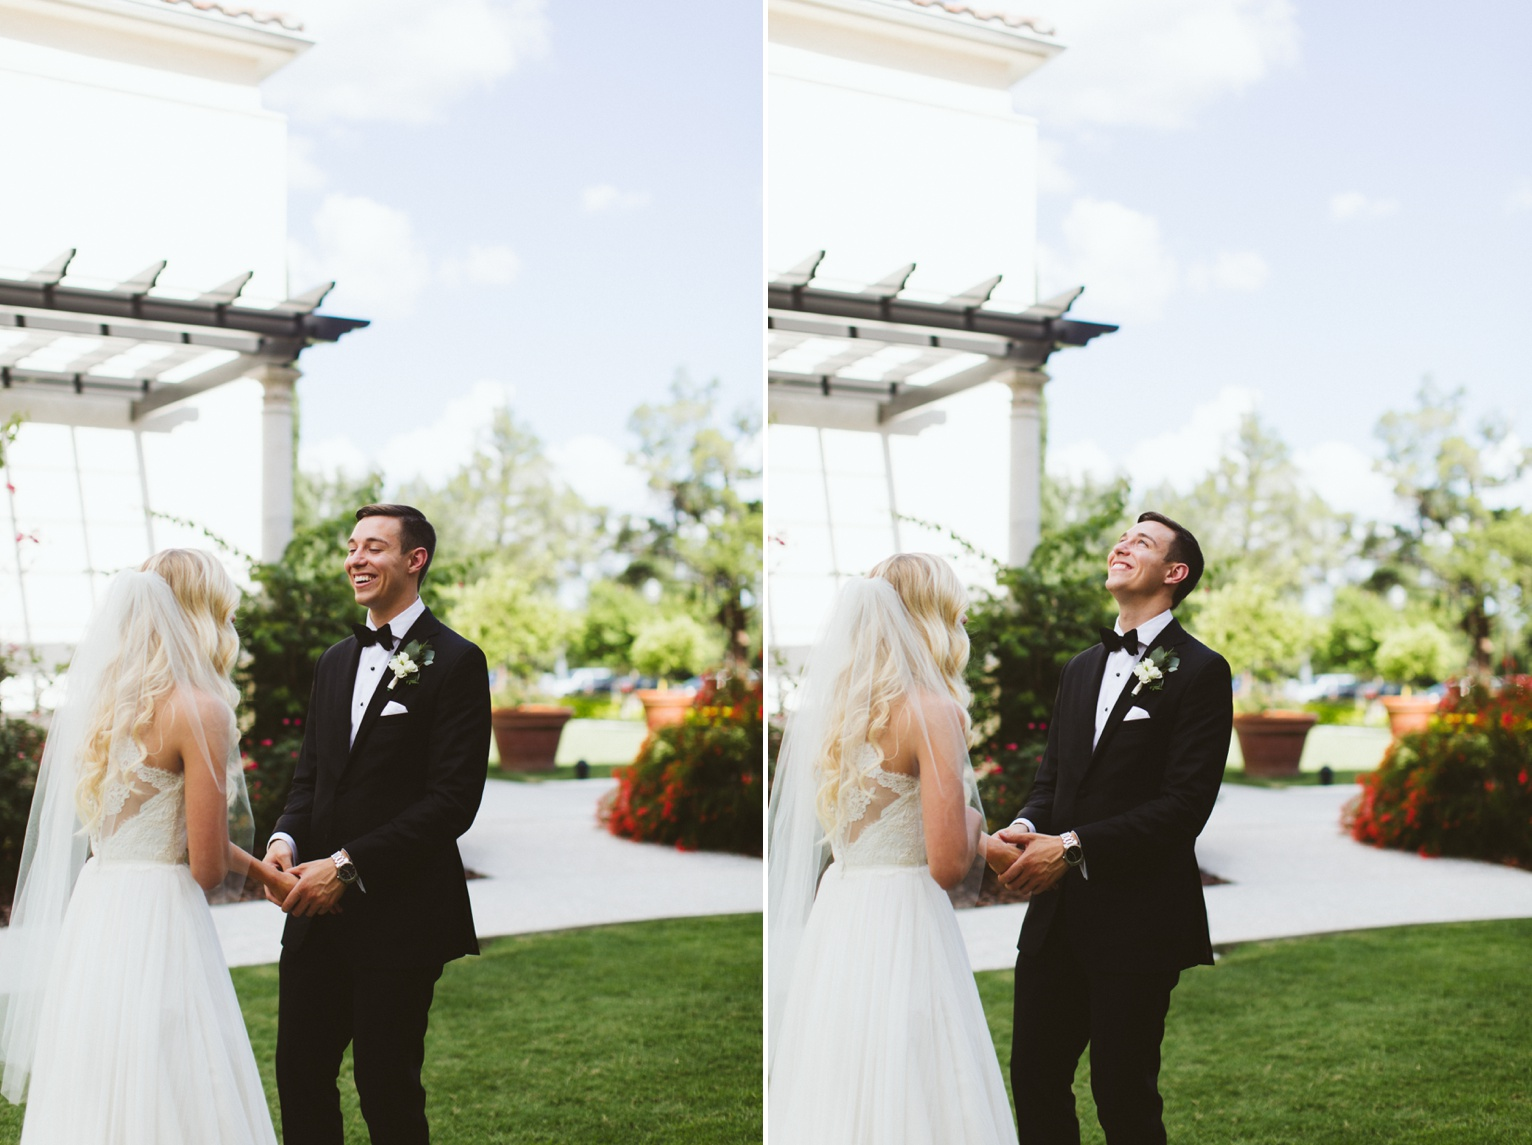 Dreamtownco.com_blog_Jordan&Lindsey_Wedding__0085.jpg